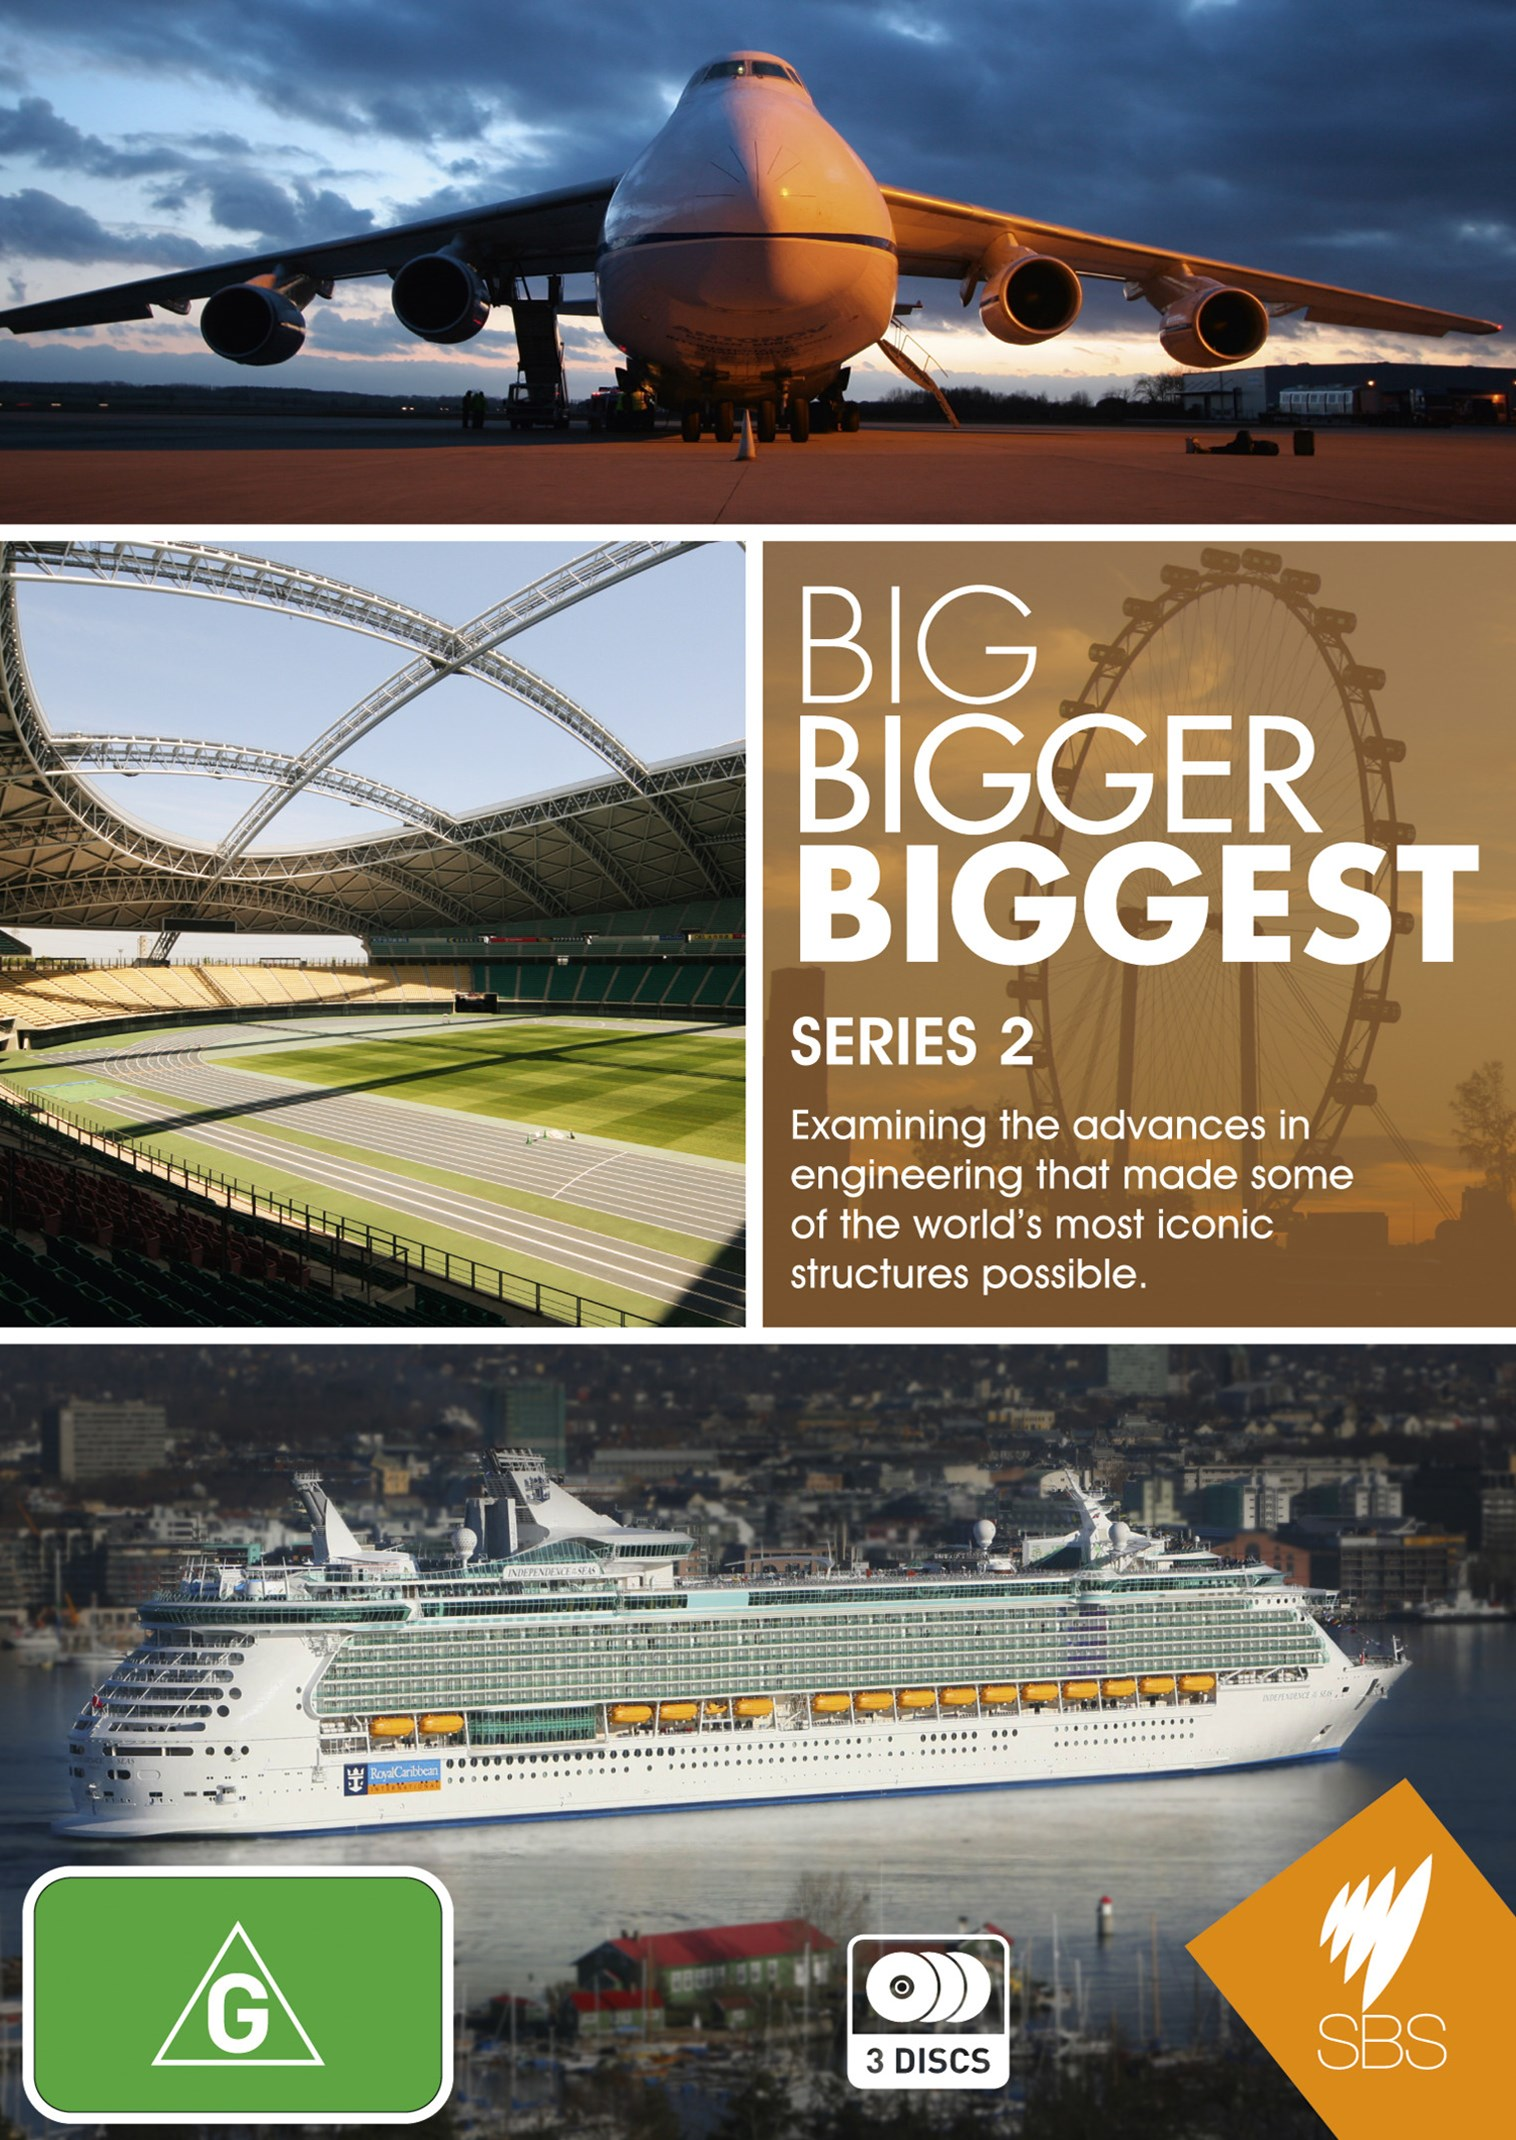 Big, Bigger, Biggest - Series 2